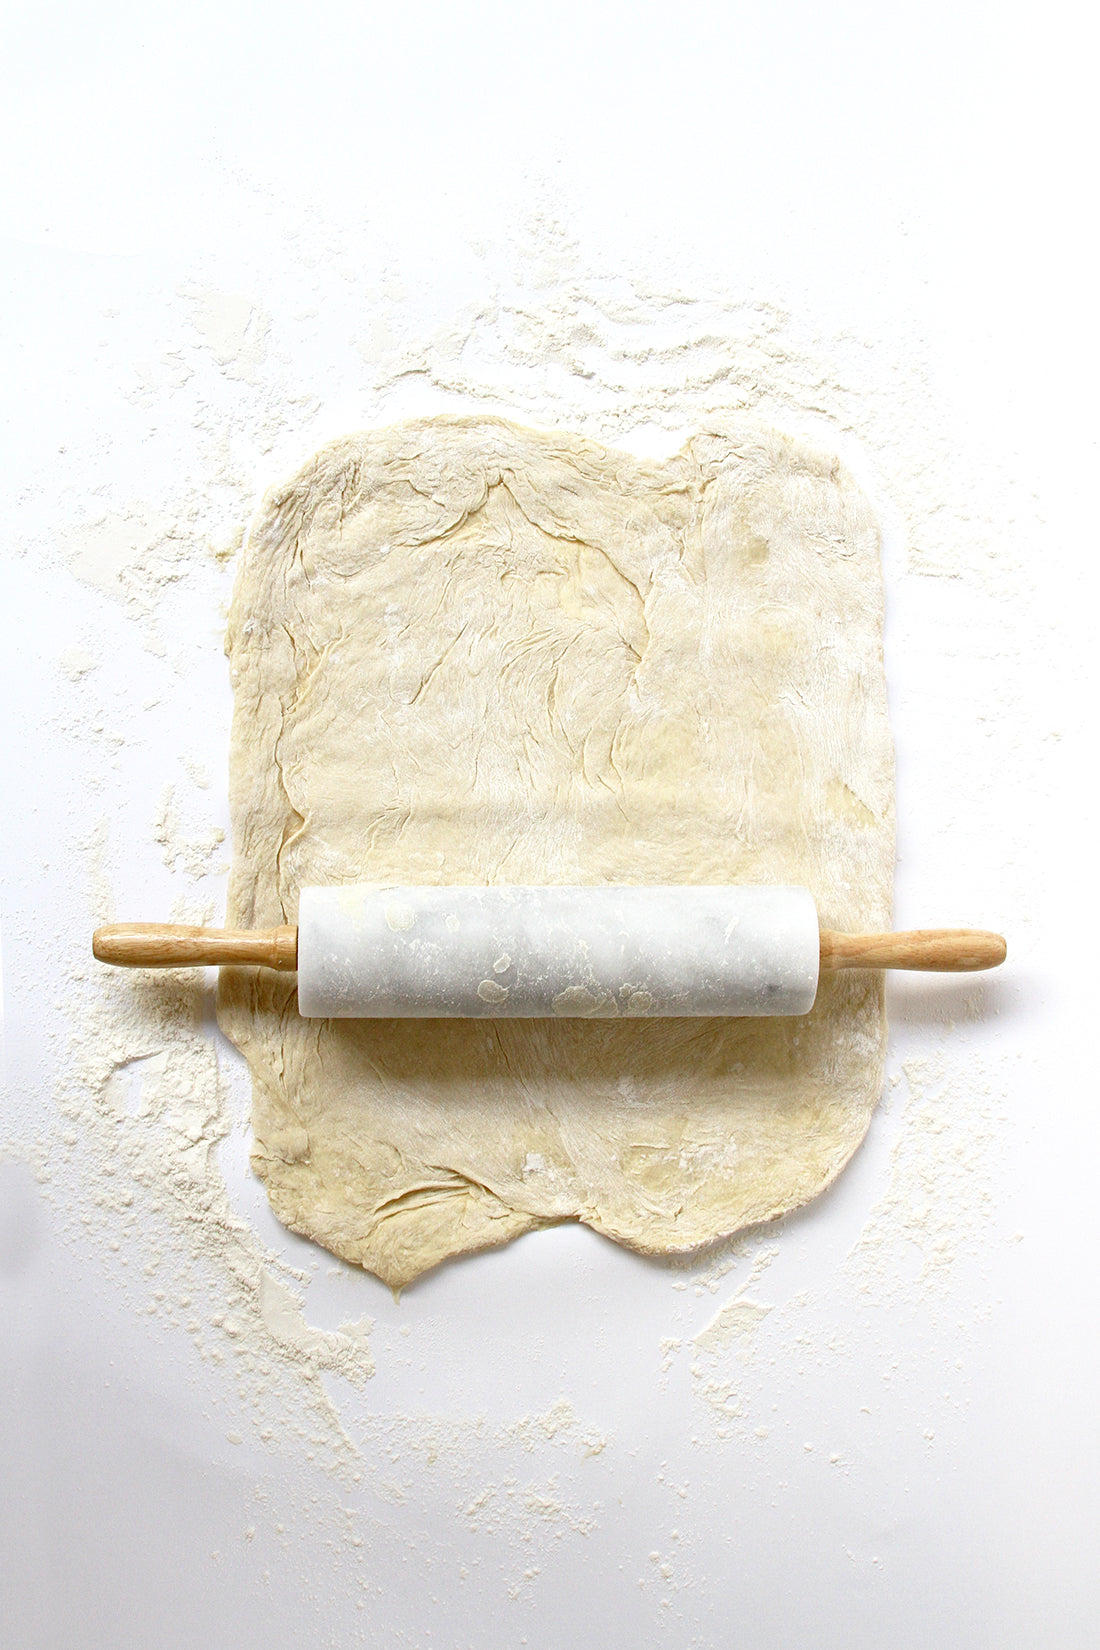 Image of dough for Miss Jones Baking Co Cake Mix Cinnamon Rolls Recipe being spread out with a rolling pin